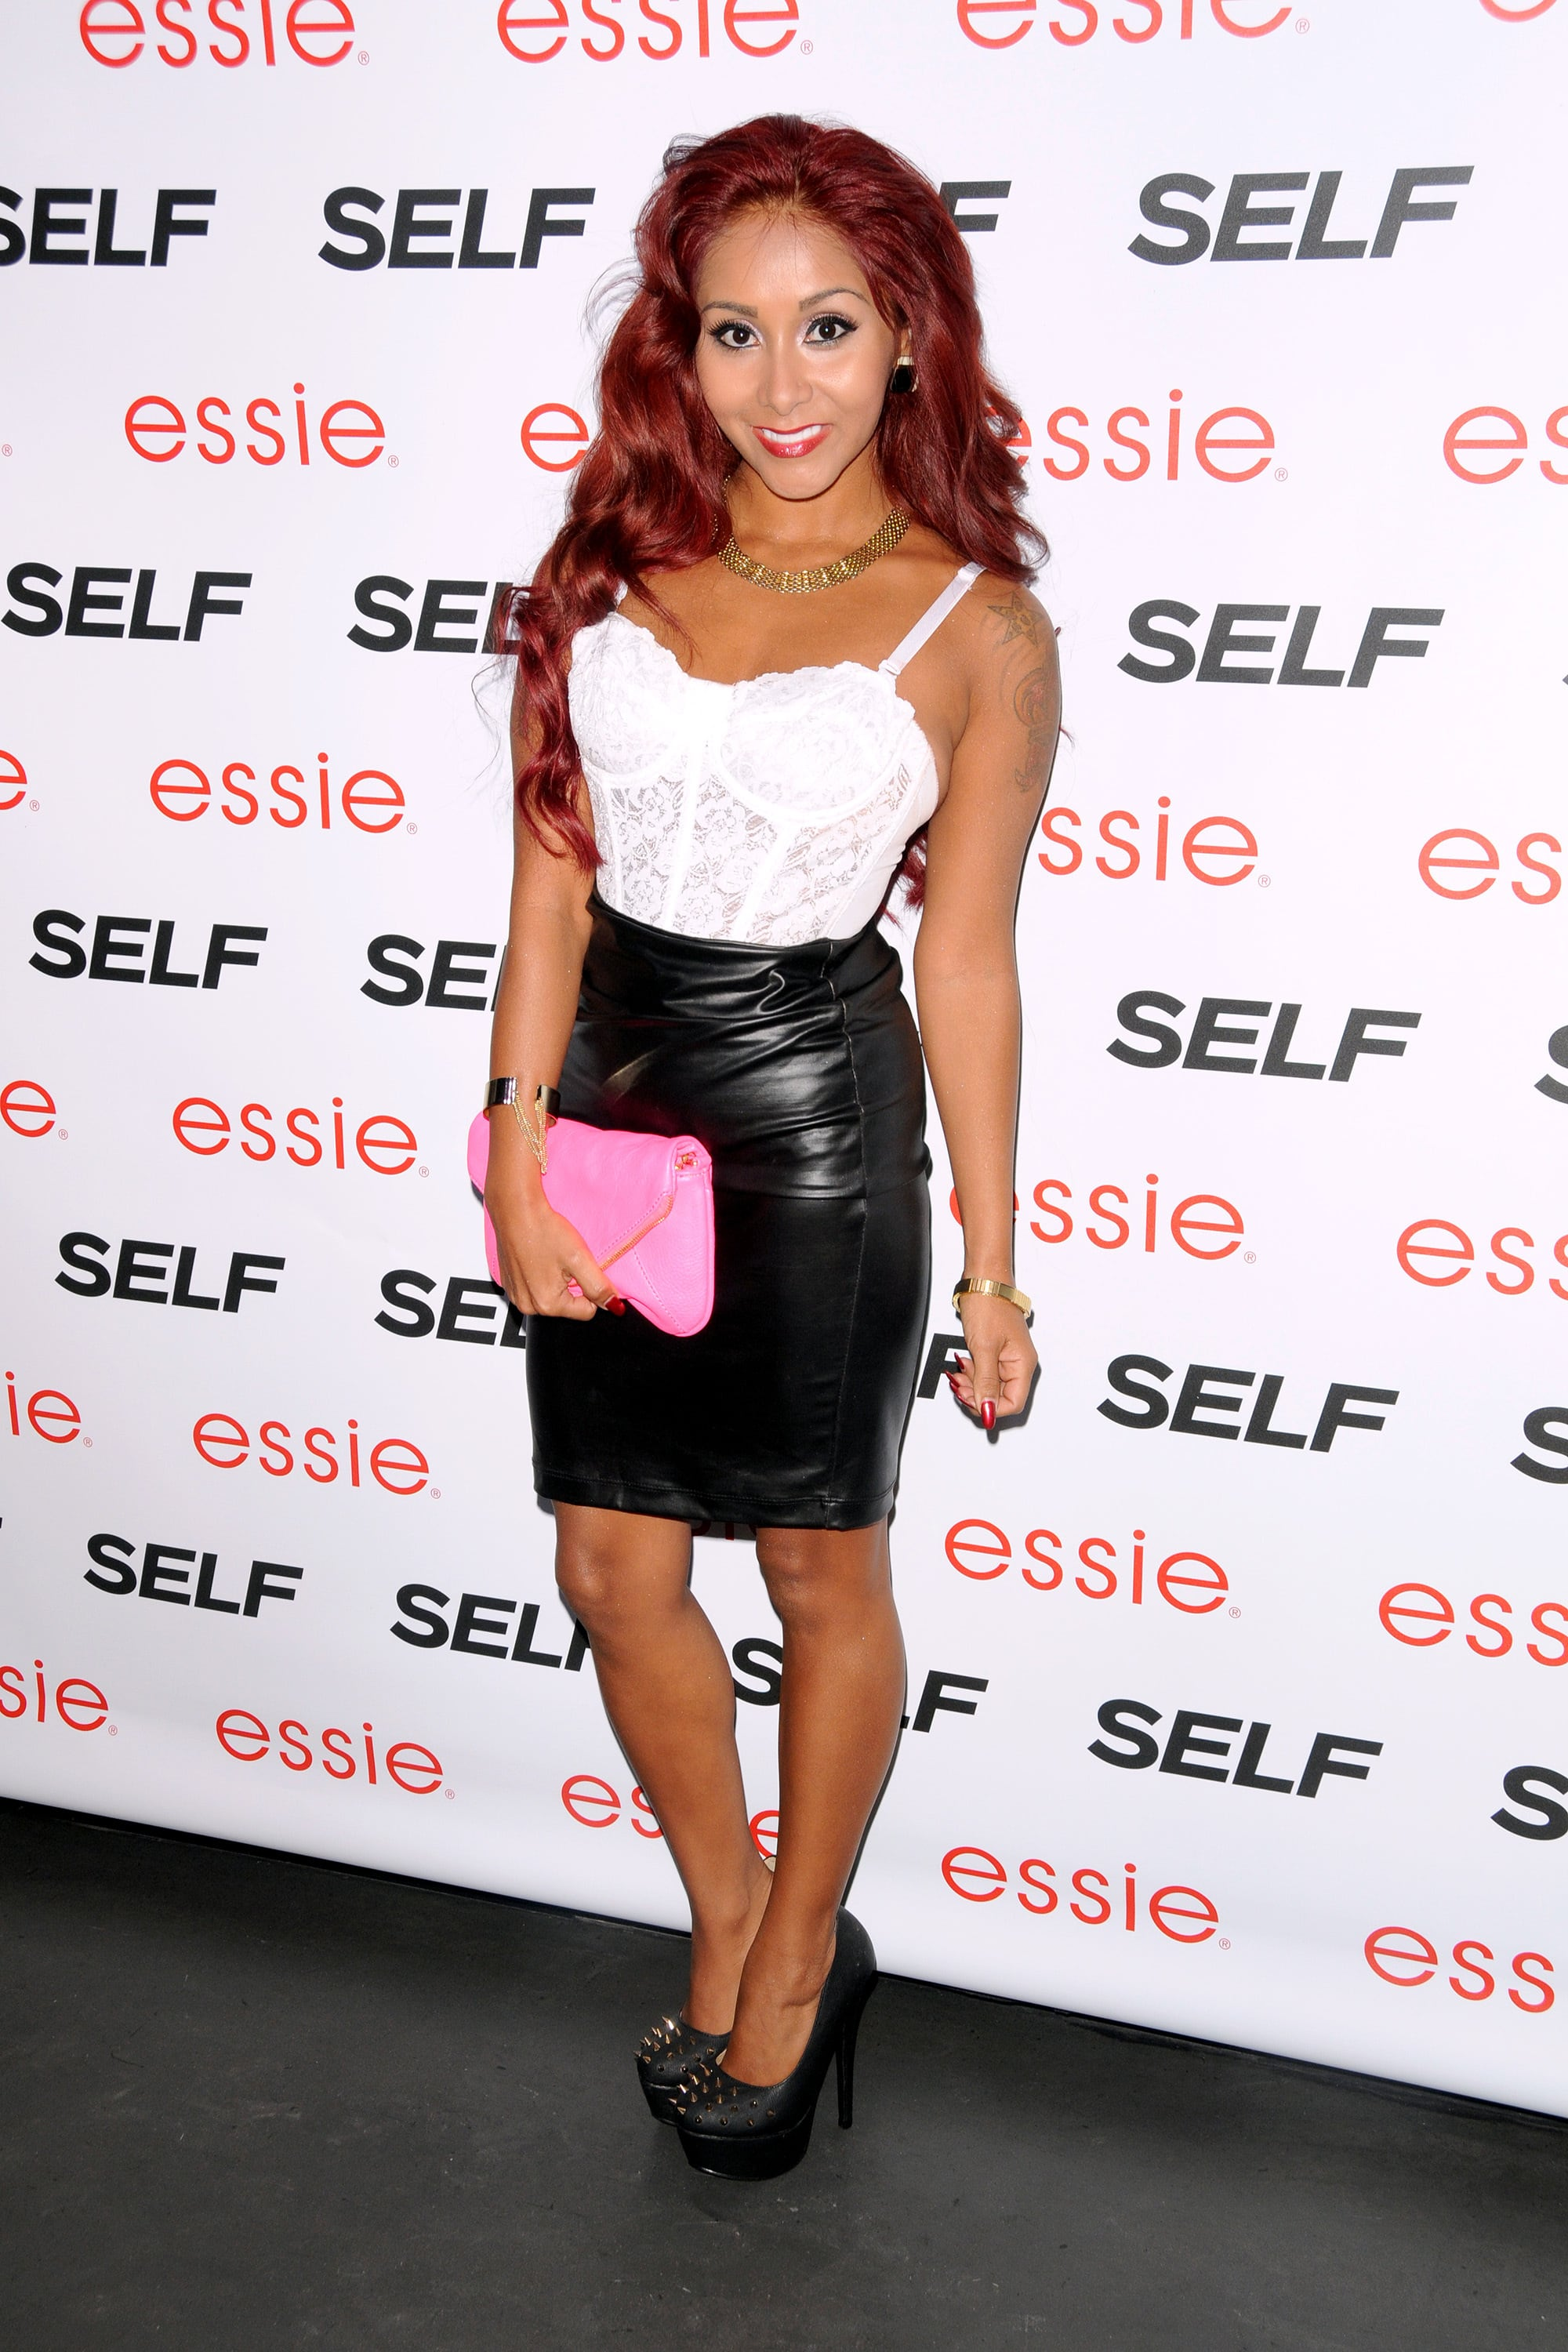 Fake Nude Snooki snooki nude photos: leaked, seductive! - the hollywood gossip